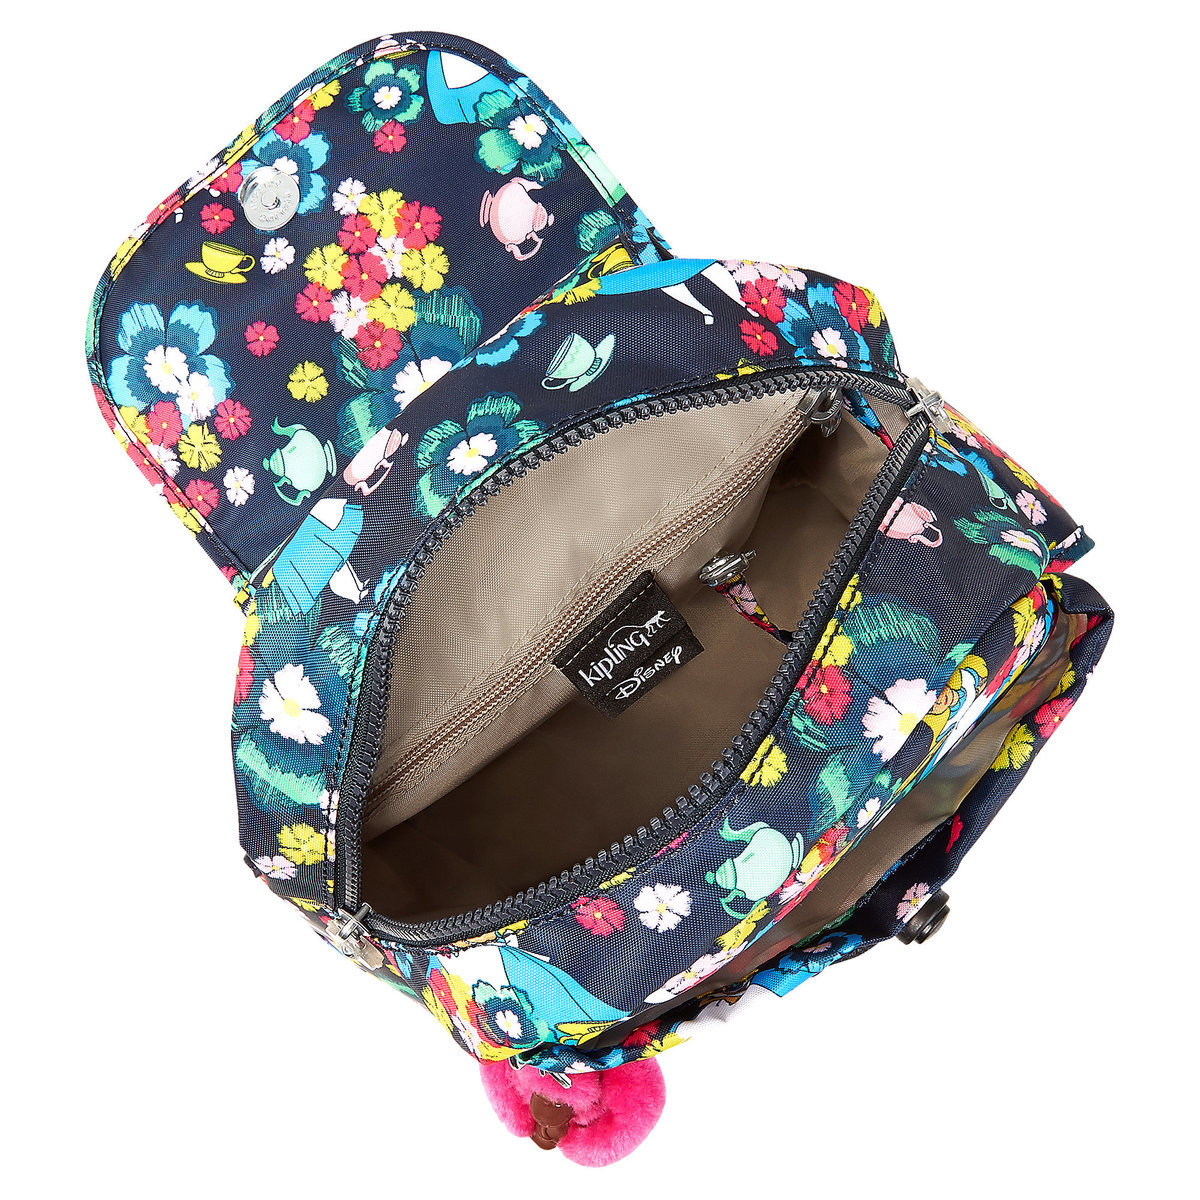 170fc58cd17 Alice in Wonderland Fashion Backpack by Kipling - Small